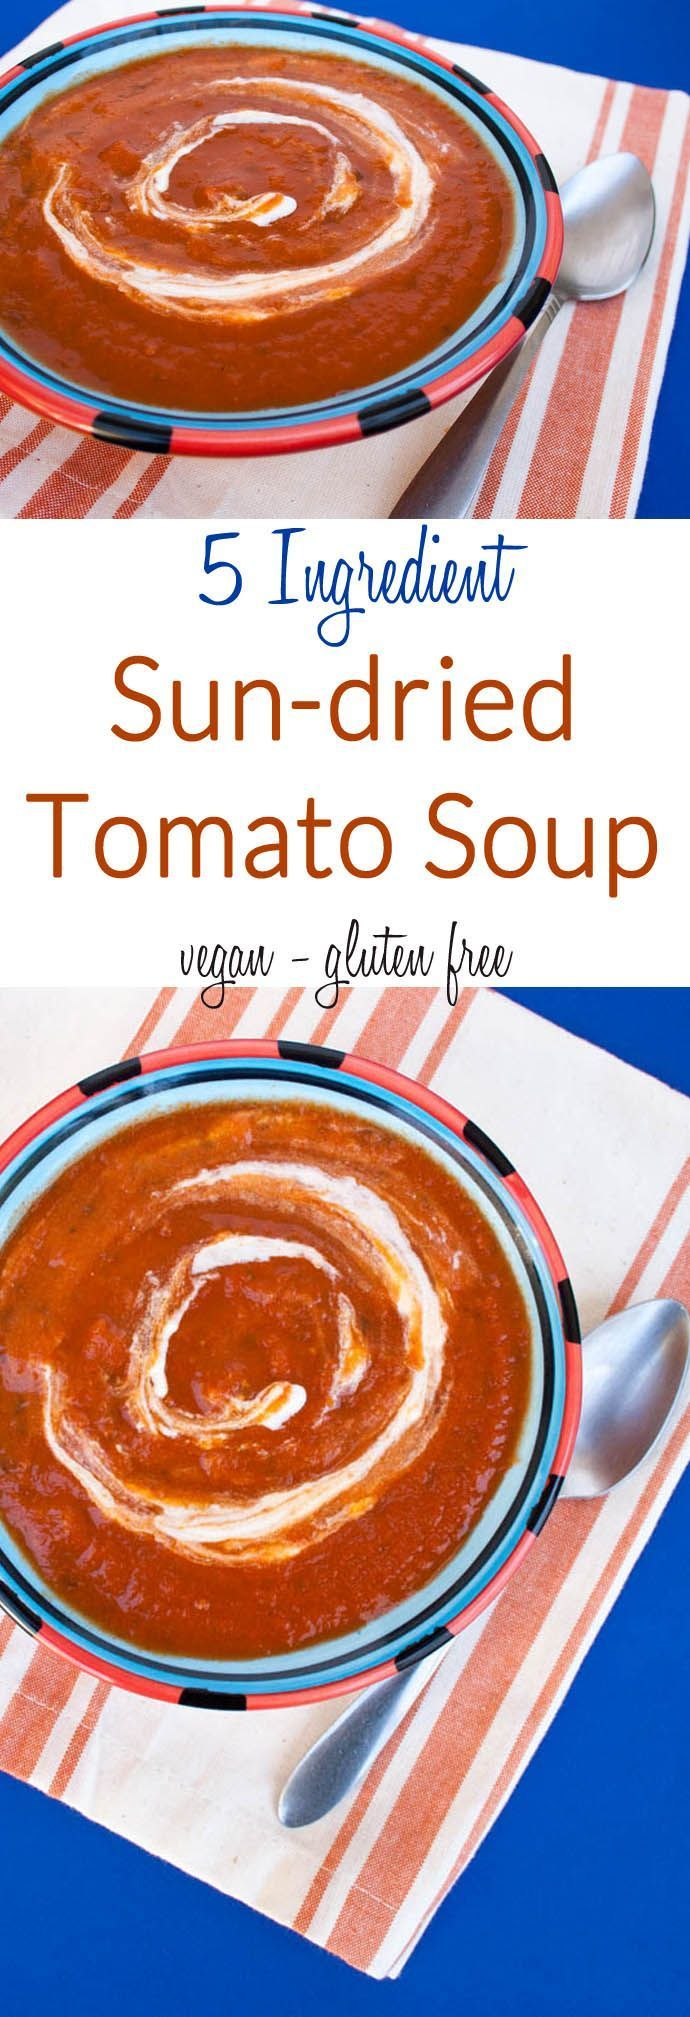 5 Ingredient Sun-dried Tomato Soup (vegan, gluten free) - This quick and easy soup is made with mostly pantry staples. It is healthy and comforting!